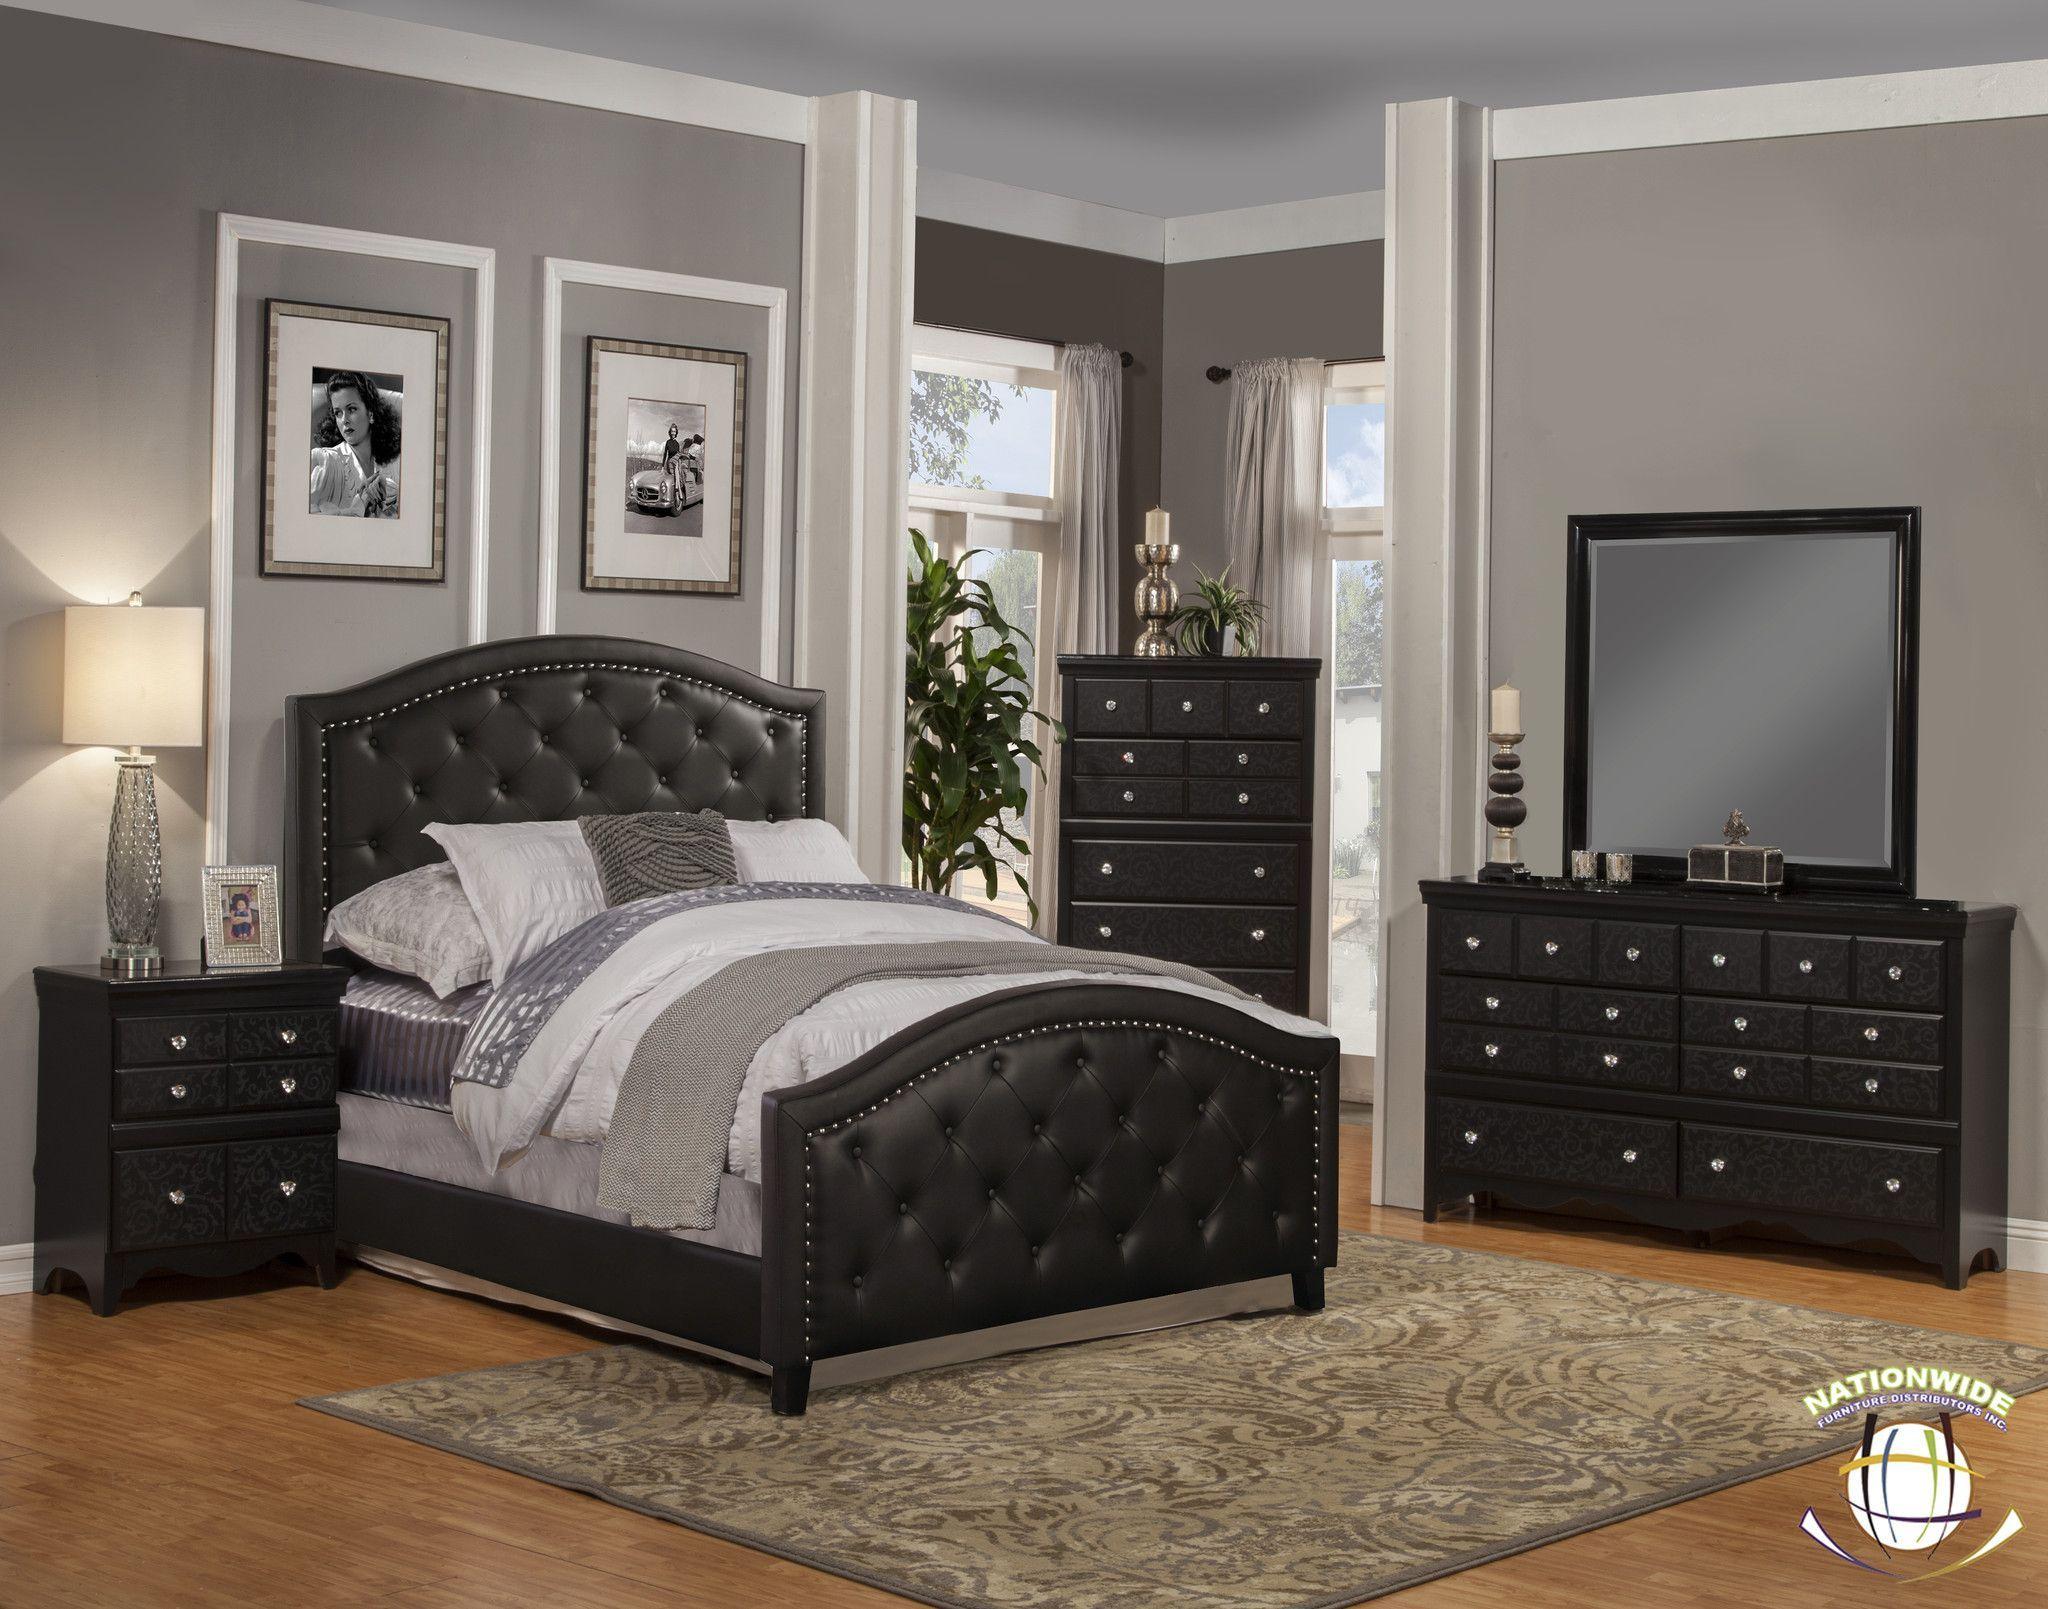 Andre Collection Bed By Hd Furniture Salon Marocain Bedroom